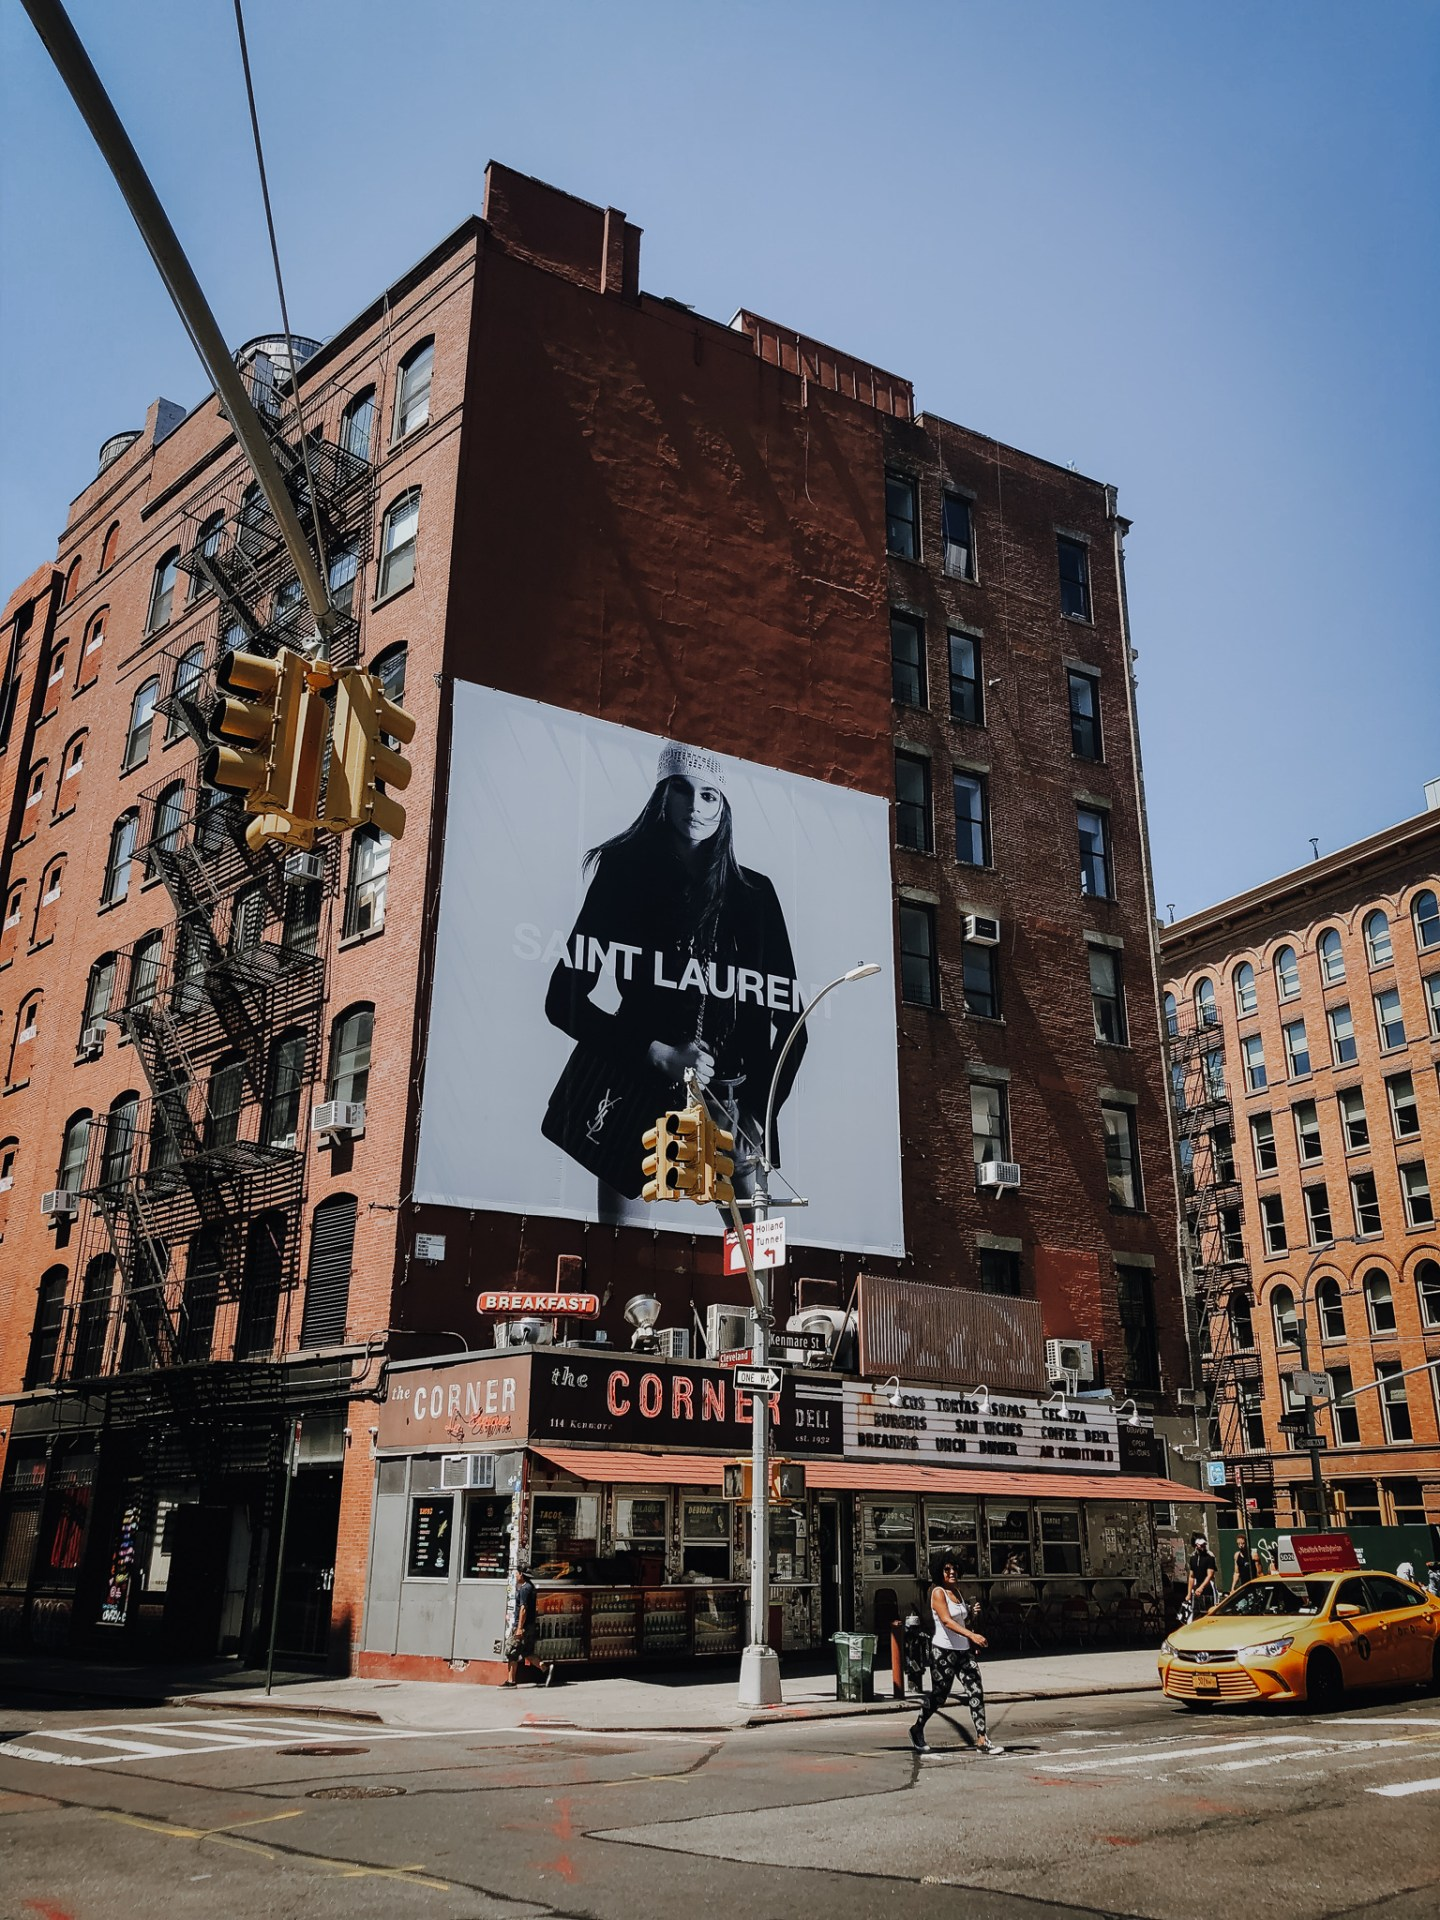 10 common tourist mistakes to avoid in NYC - Don't forget to visit Soho